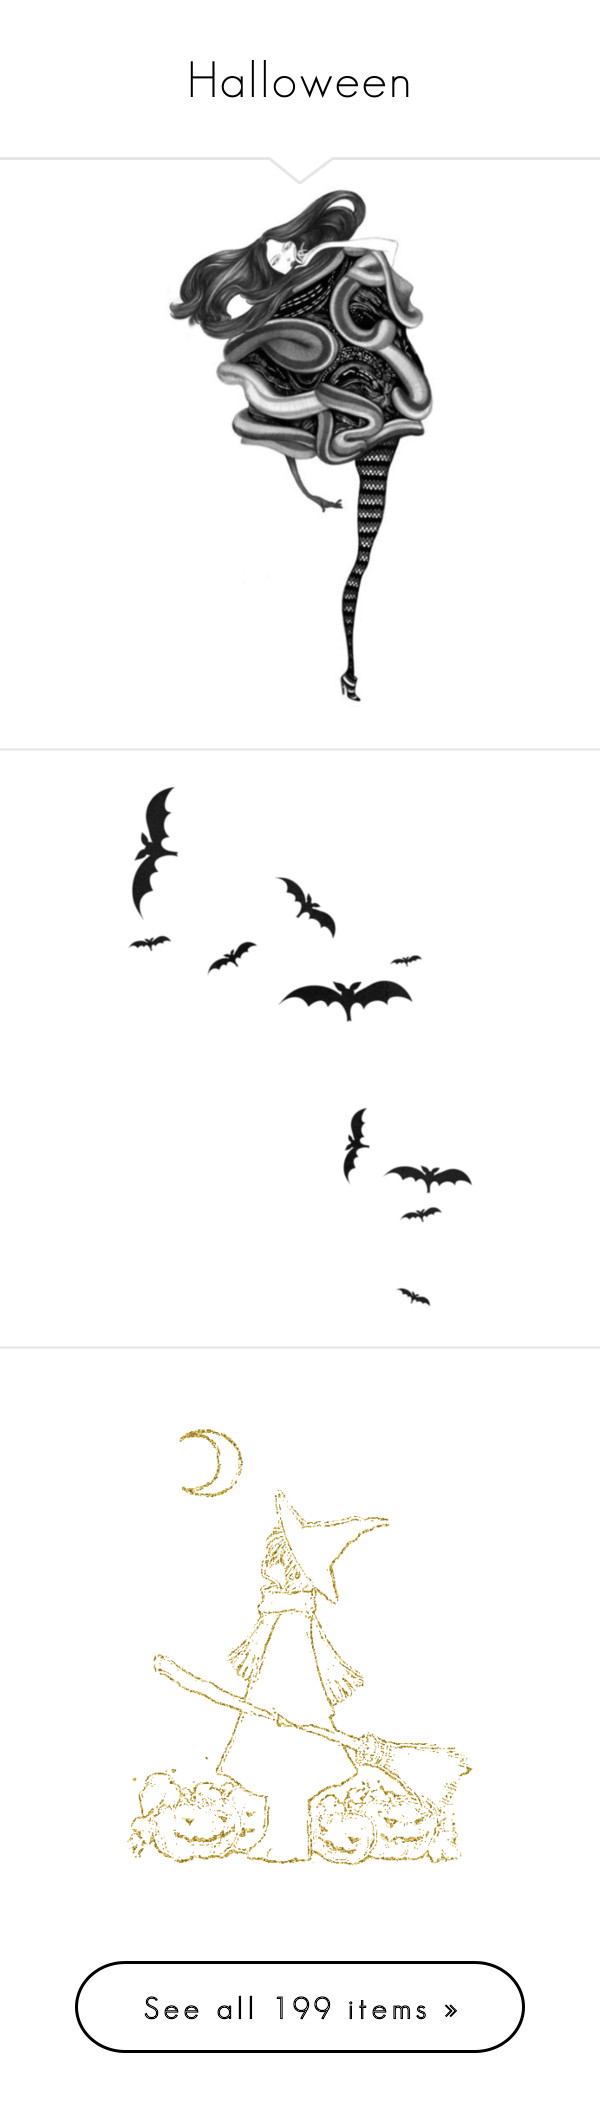 """""""Halloween"""" by megalexan ❤ liked on Polyvore featuring backgrounds, sketches, drawings, art, fashion sketches, halloween, filler, decor, extras and accessories"""